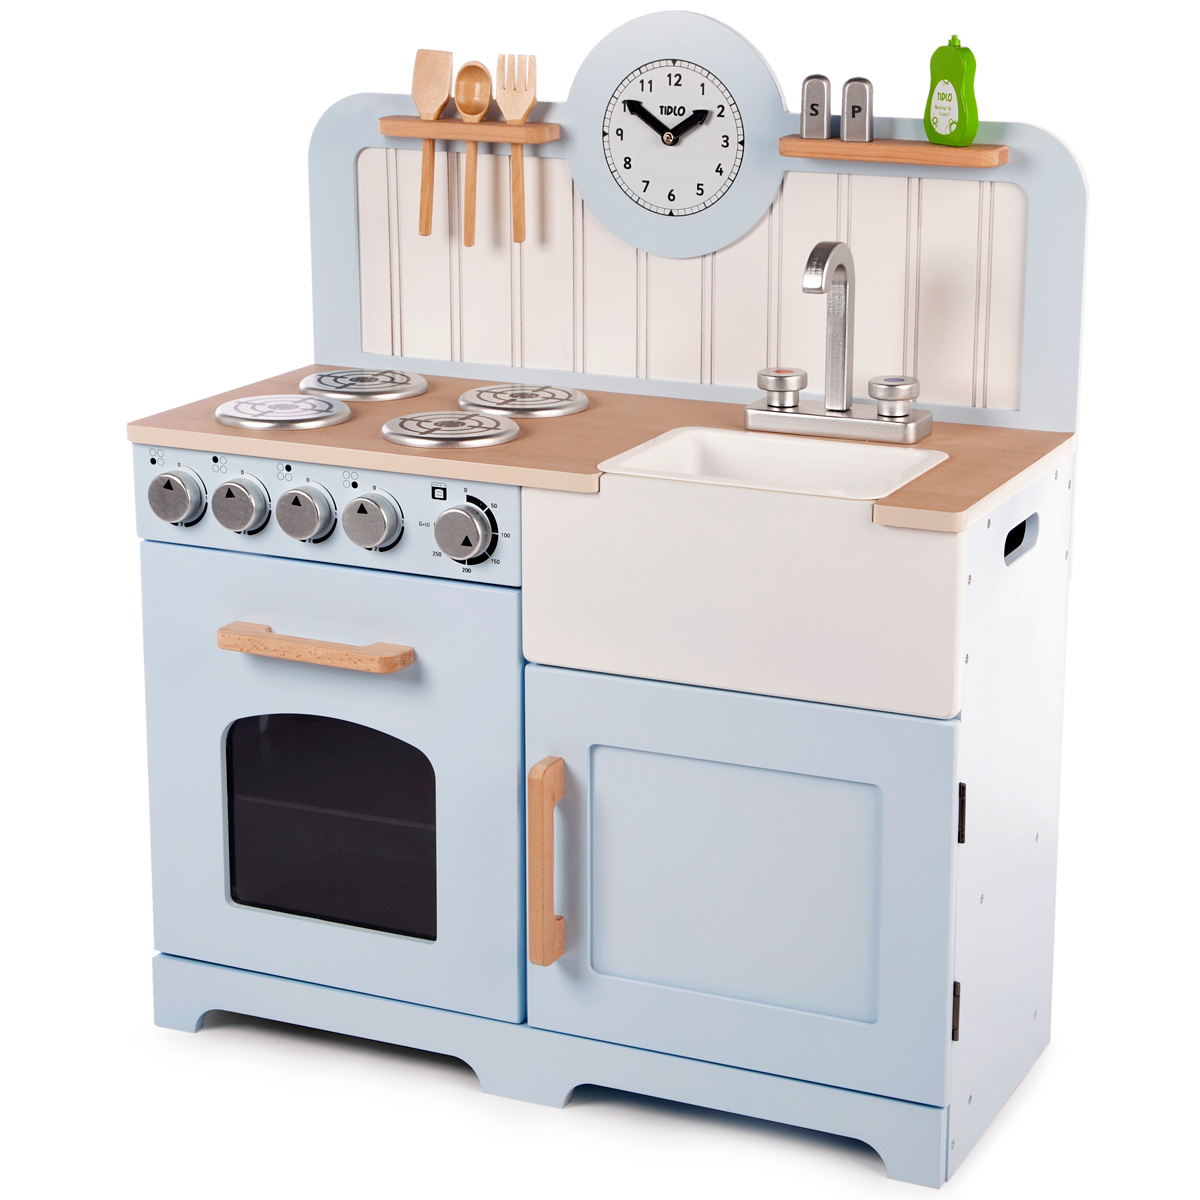 Blue Country Wooden Play Kitchen By Tidlo